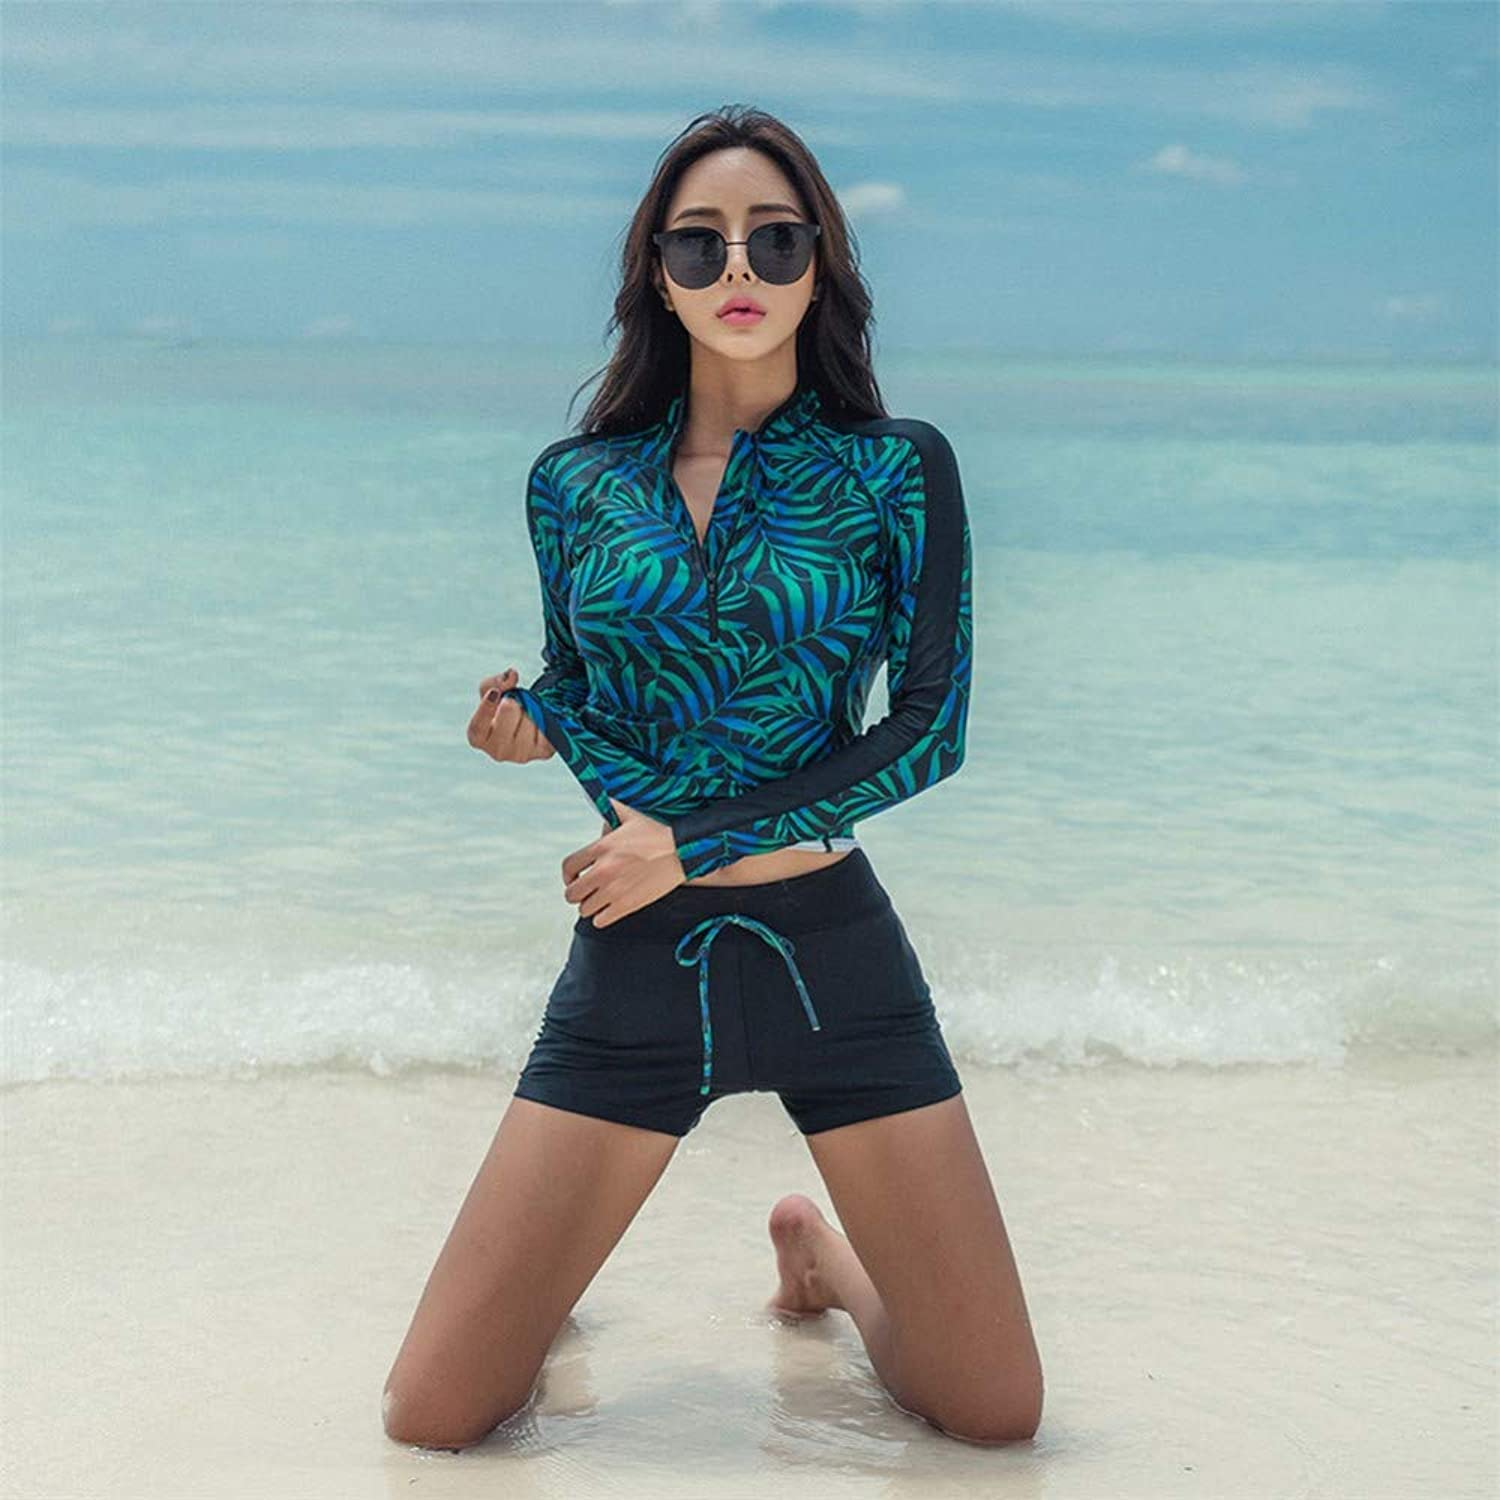 WAZR Women'S Long-Sleeved Long-Sleeved, Flat-Angle, Belly-Covering Sport Conservative, Slim And Large-Size Hot Spring Swimsuit